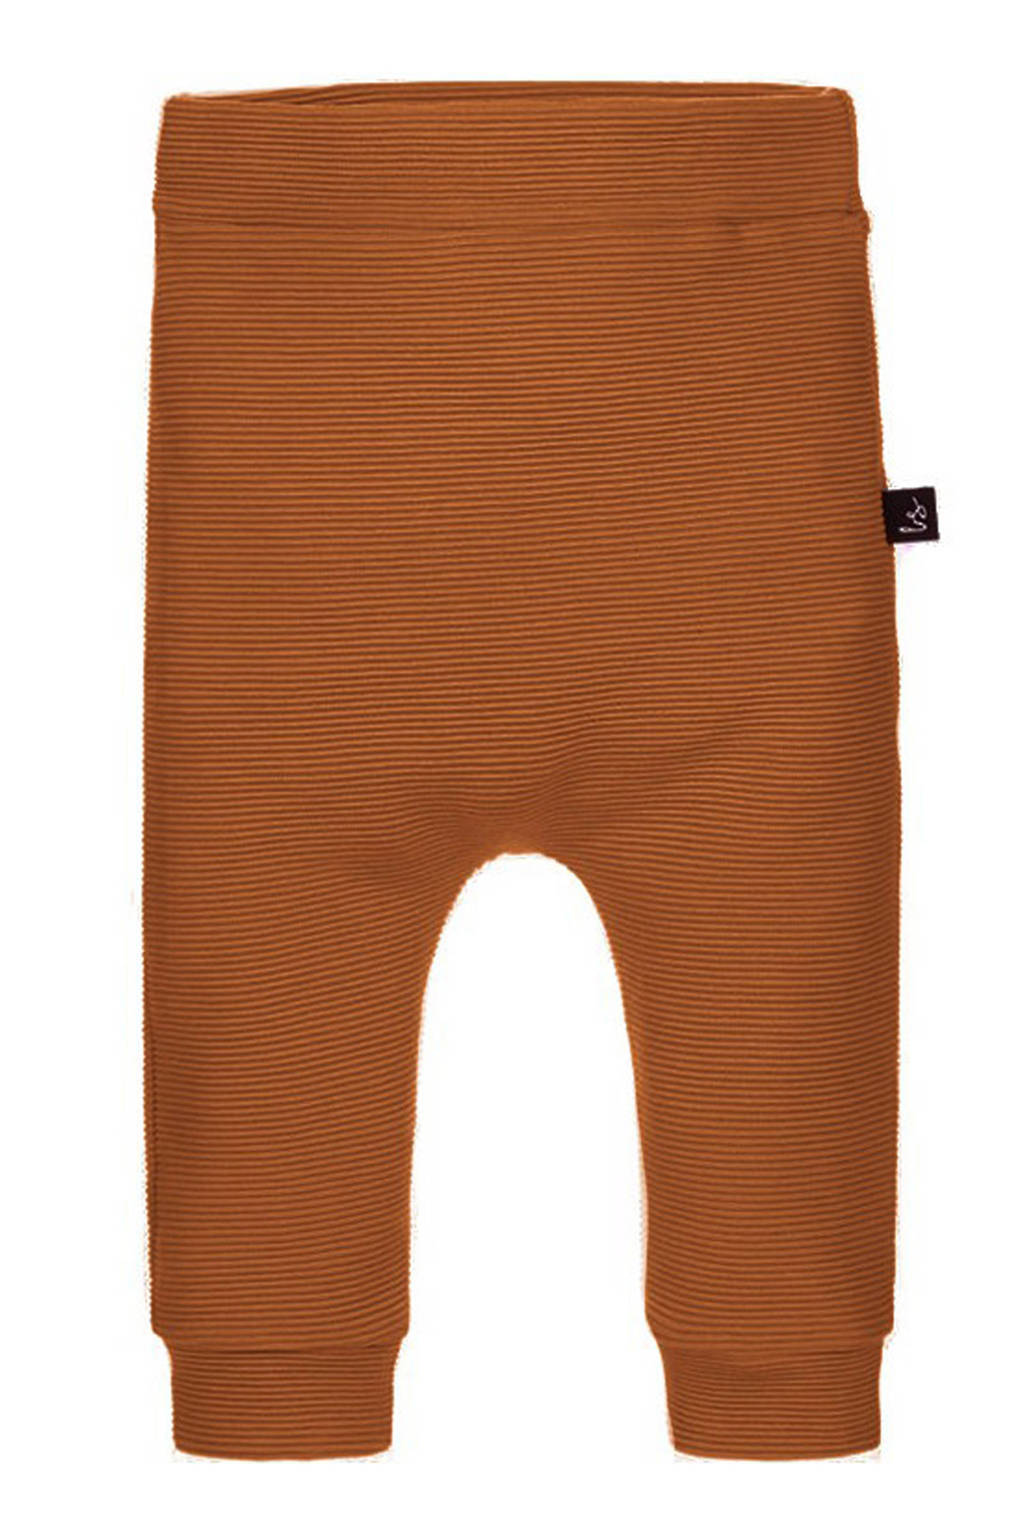 Babystyling broek roest, Roest